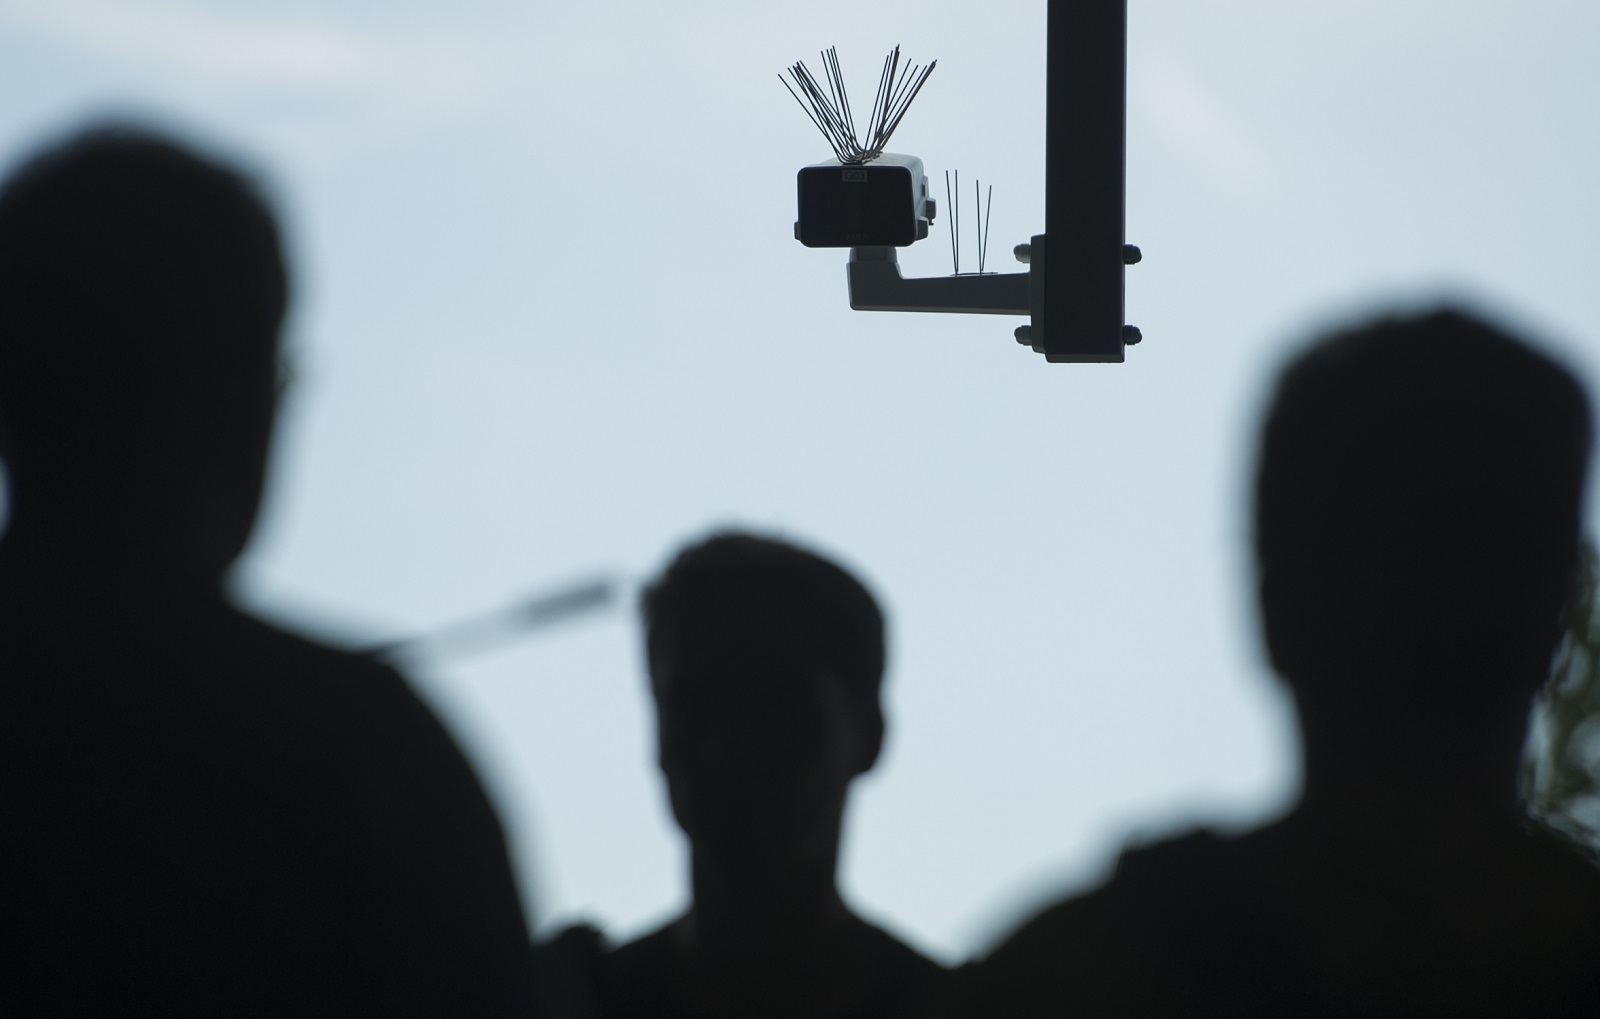 Facial recognition technologies tested on a crowd (Photo: Steffi Loos/Getty)